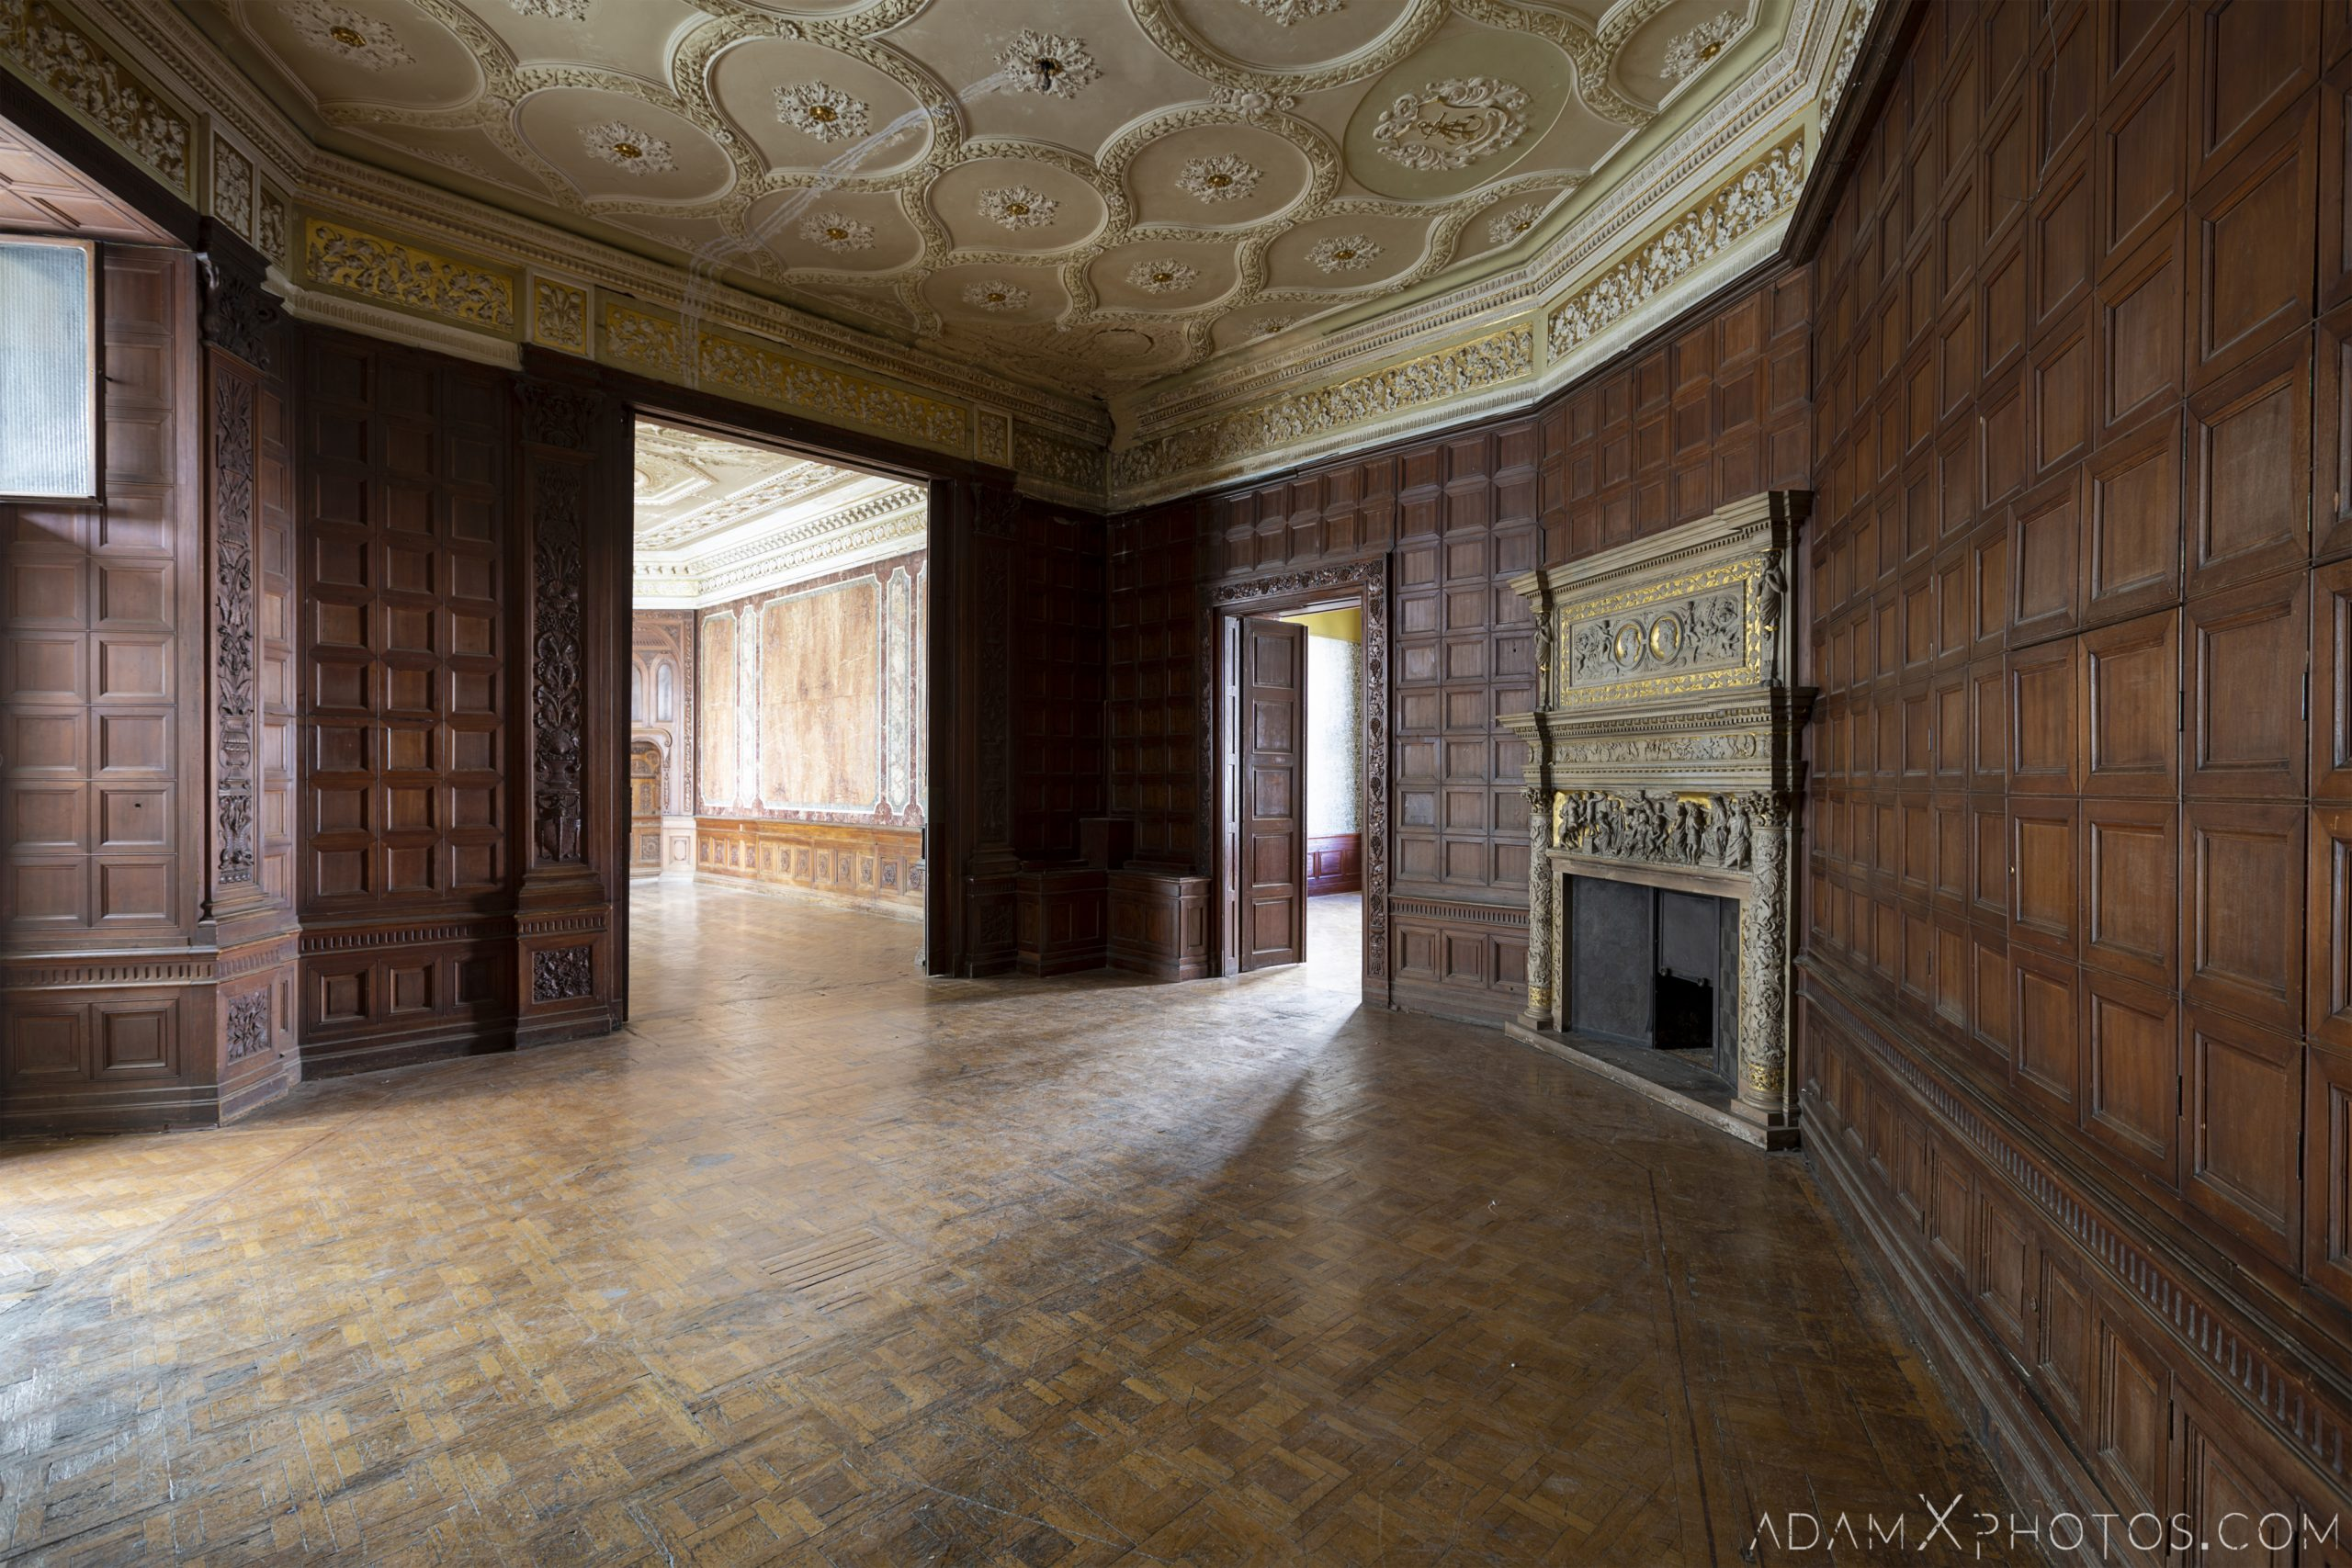 wooden panels fireplace ceiling Adria Palace Budapest Hungary Adam X Urbex Urban Exploration Access 2018 Blade Runner 2049 Abandoned decay ruins lost forgotten derelict location creepy haunting eerie security ornate grand neo baroque